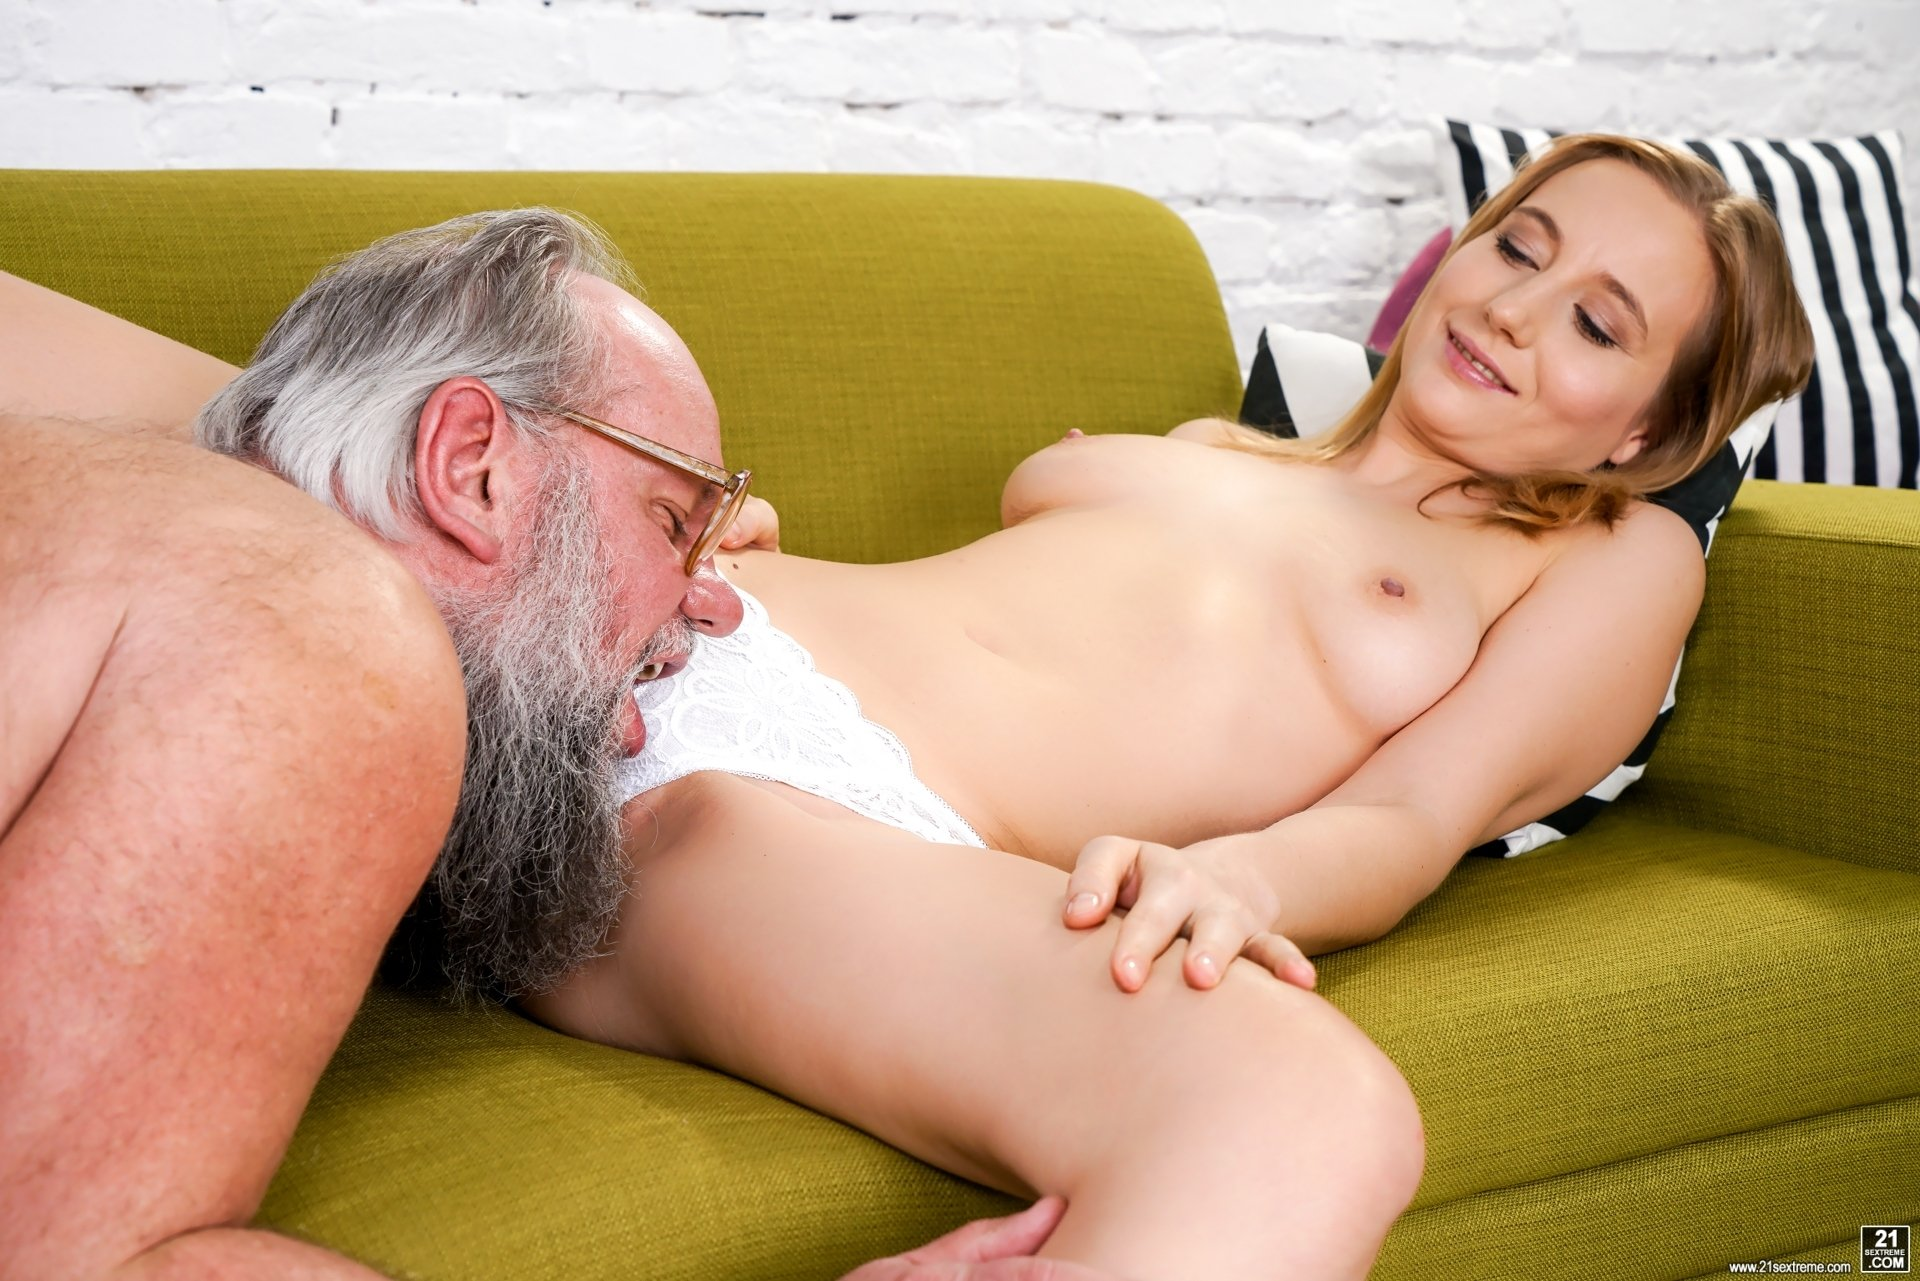 Horny stepsis hops on stepbros face and makes him eat her twat!